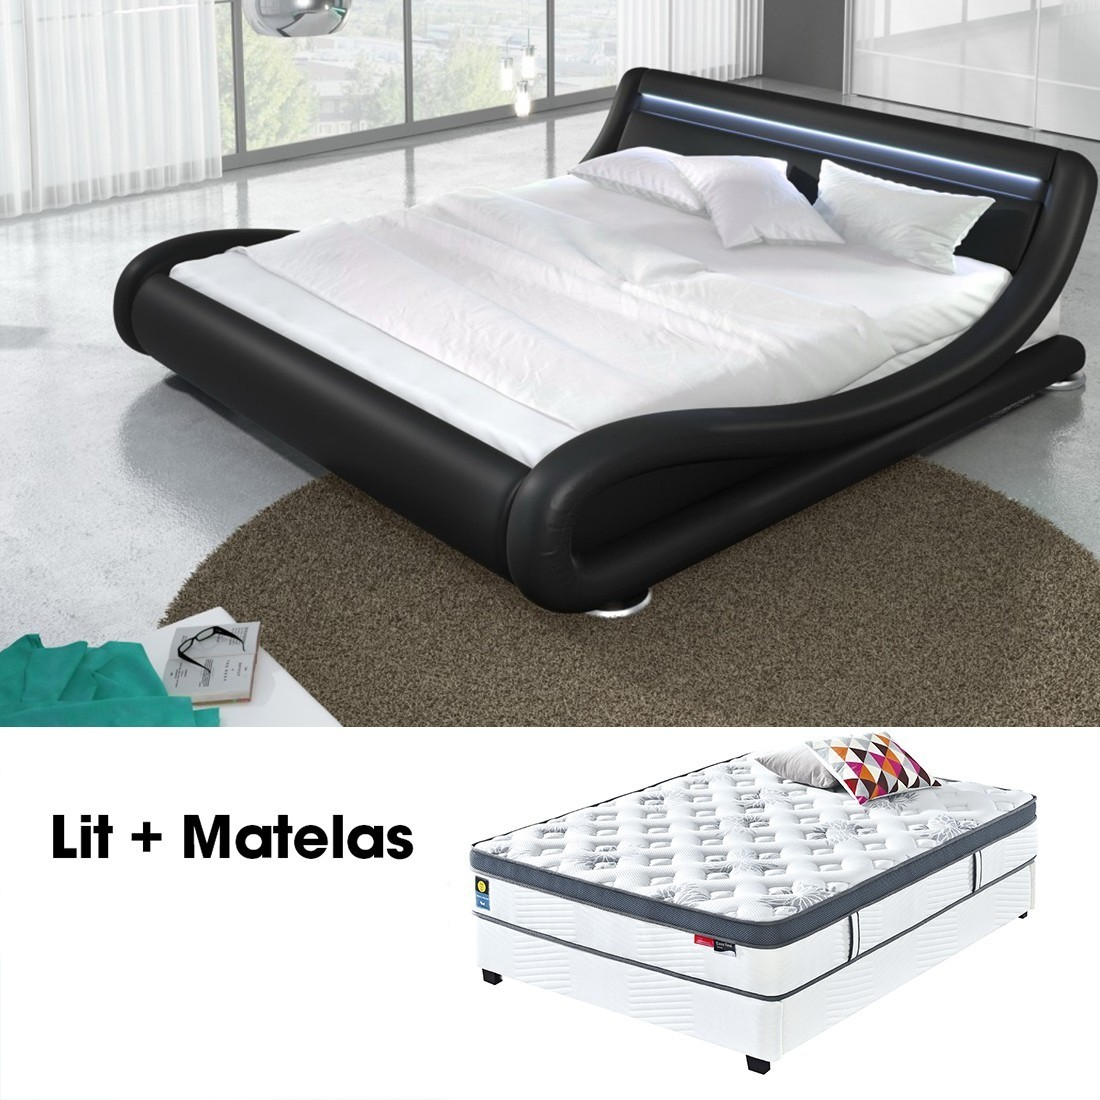 lit led julia noir 160cm avec matelas star en latex. Black Bedroom Furniture Sets. Home Design Ideas